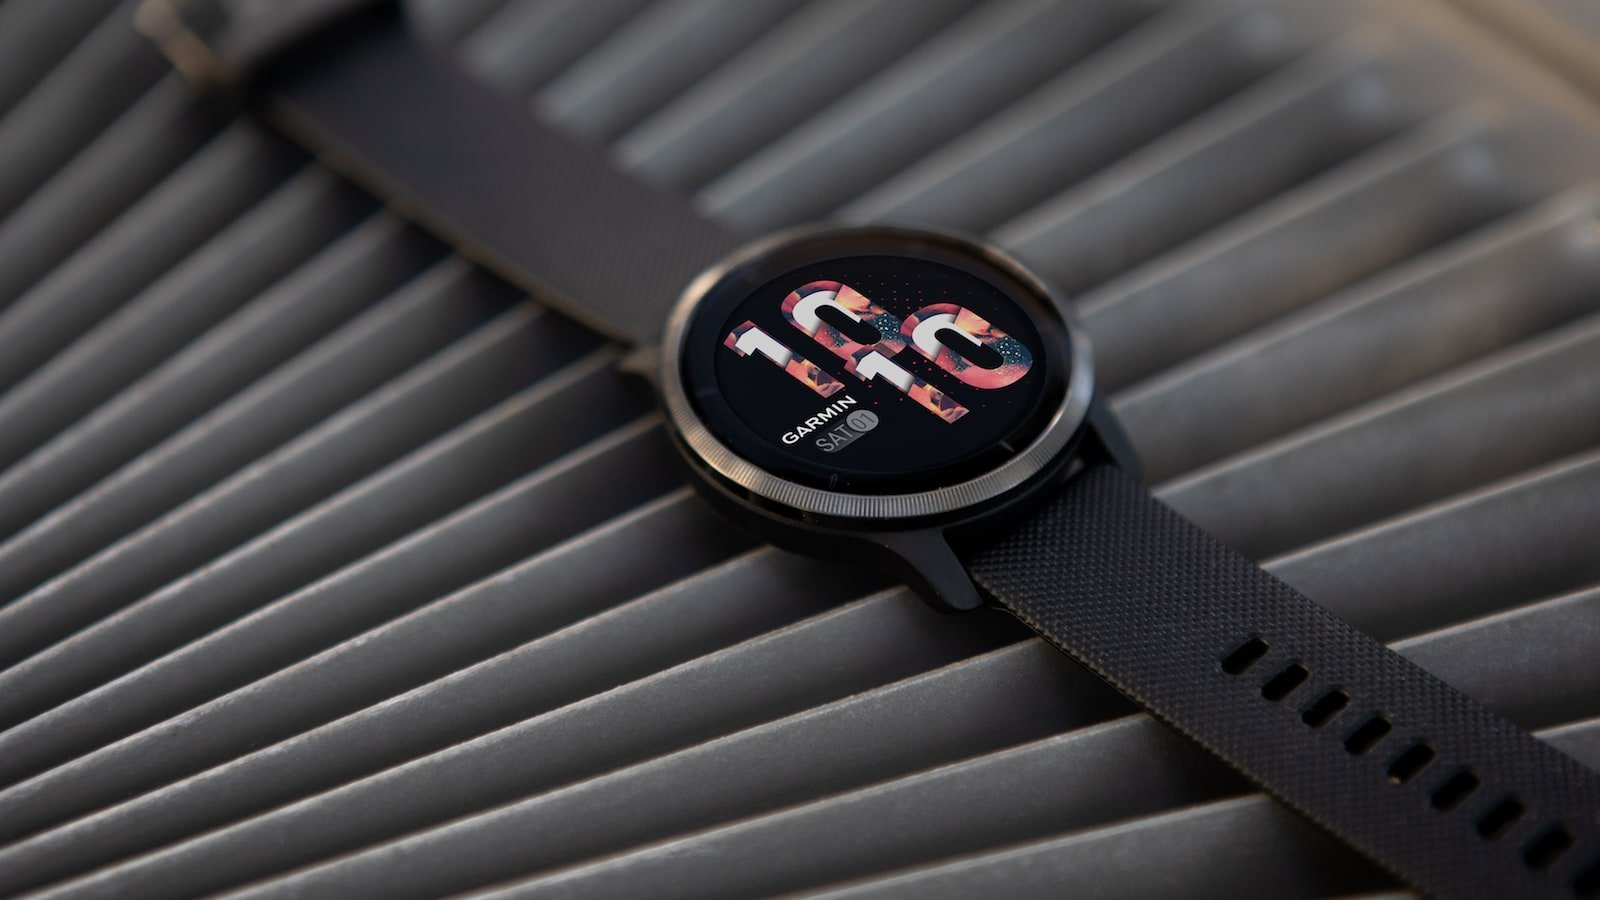 Best smartwatches to buy in 2021